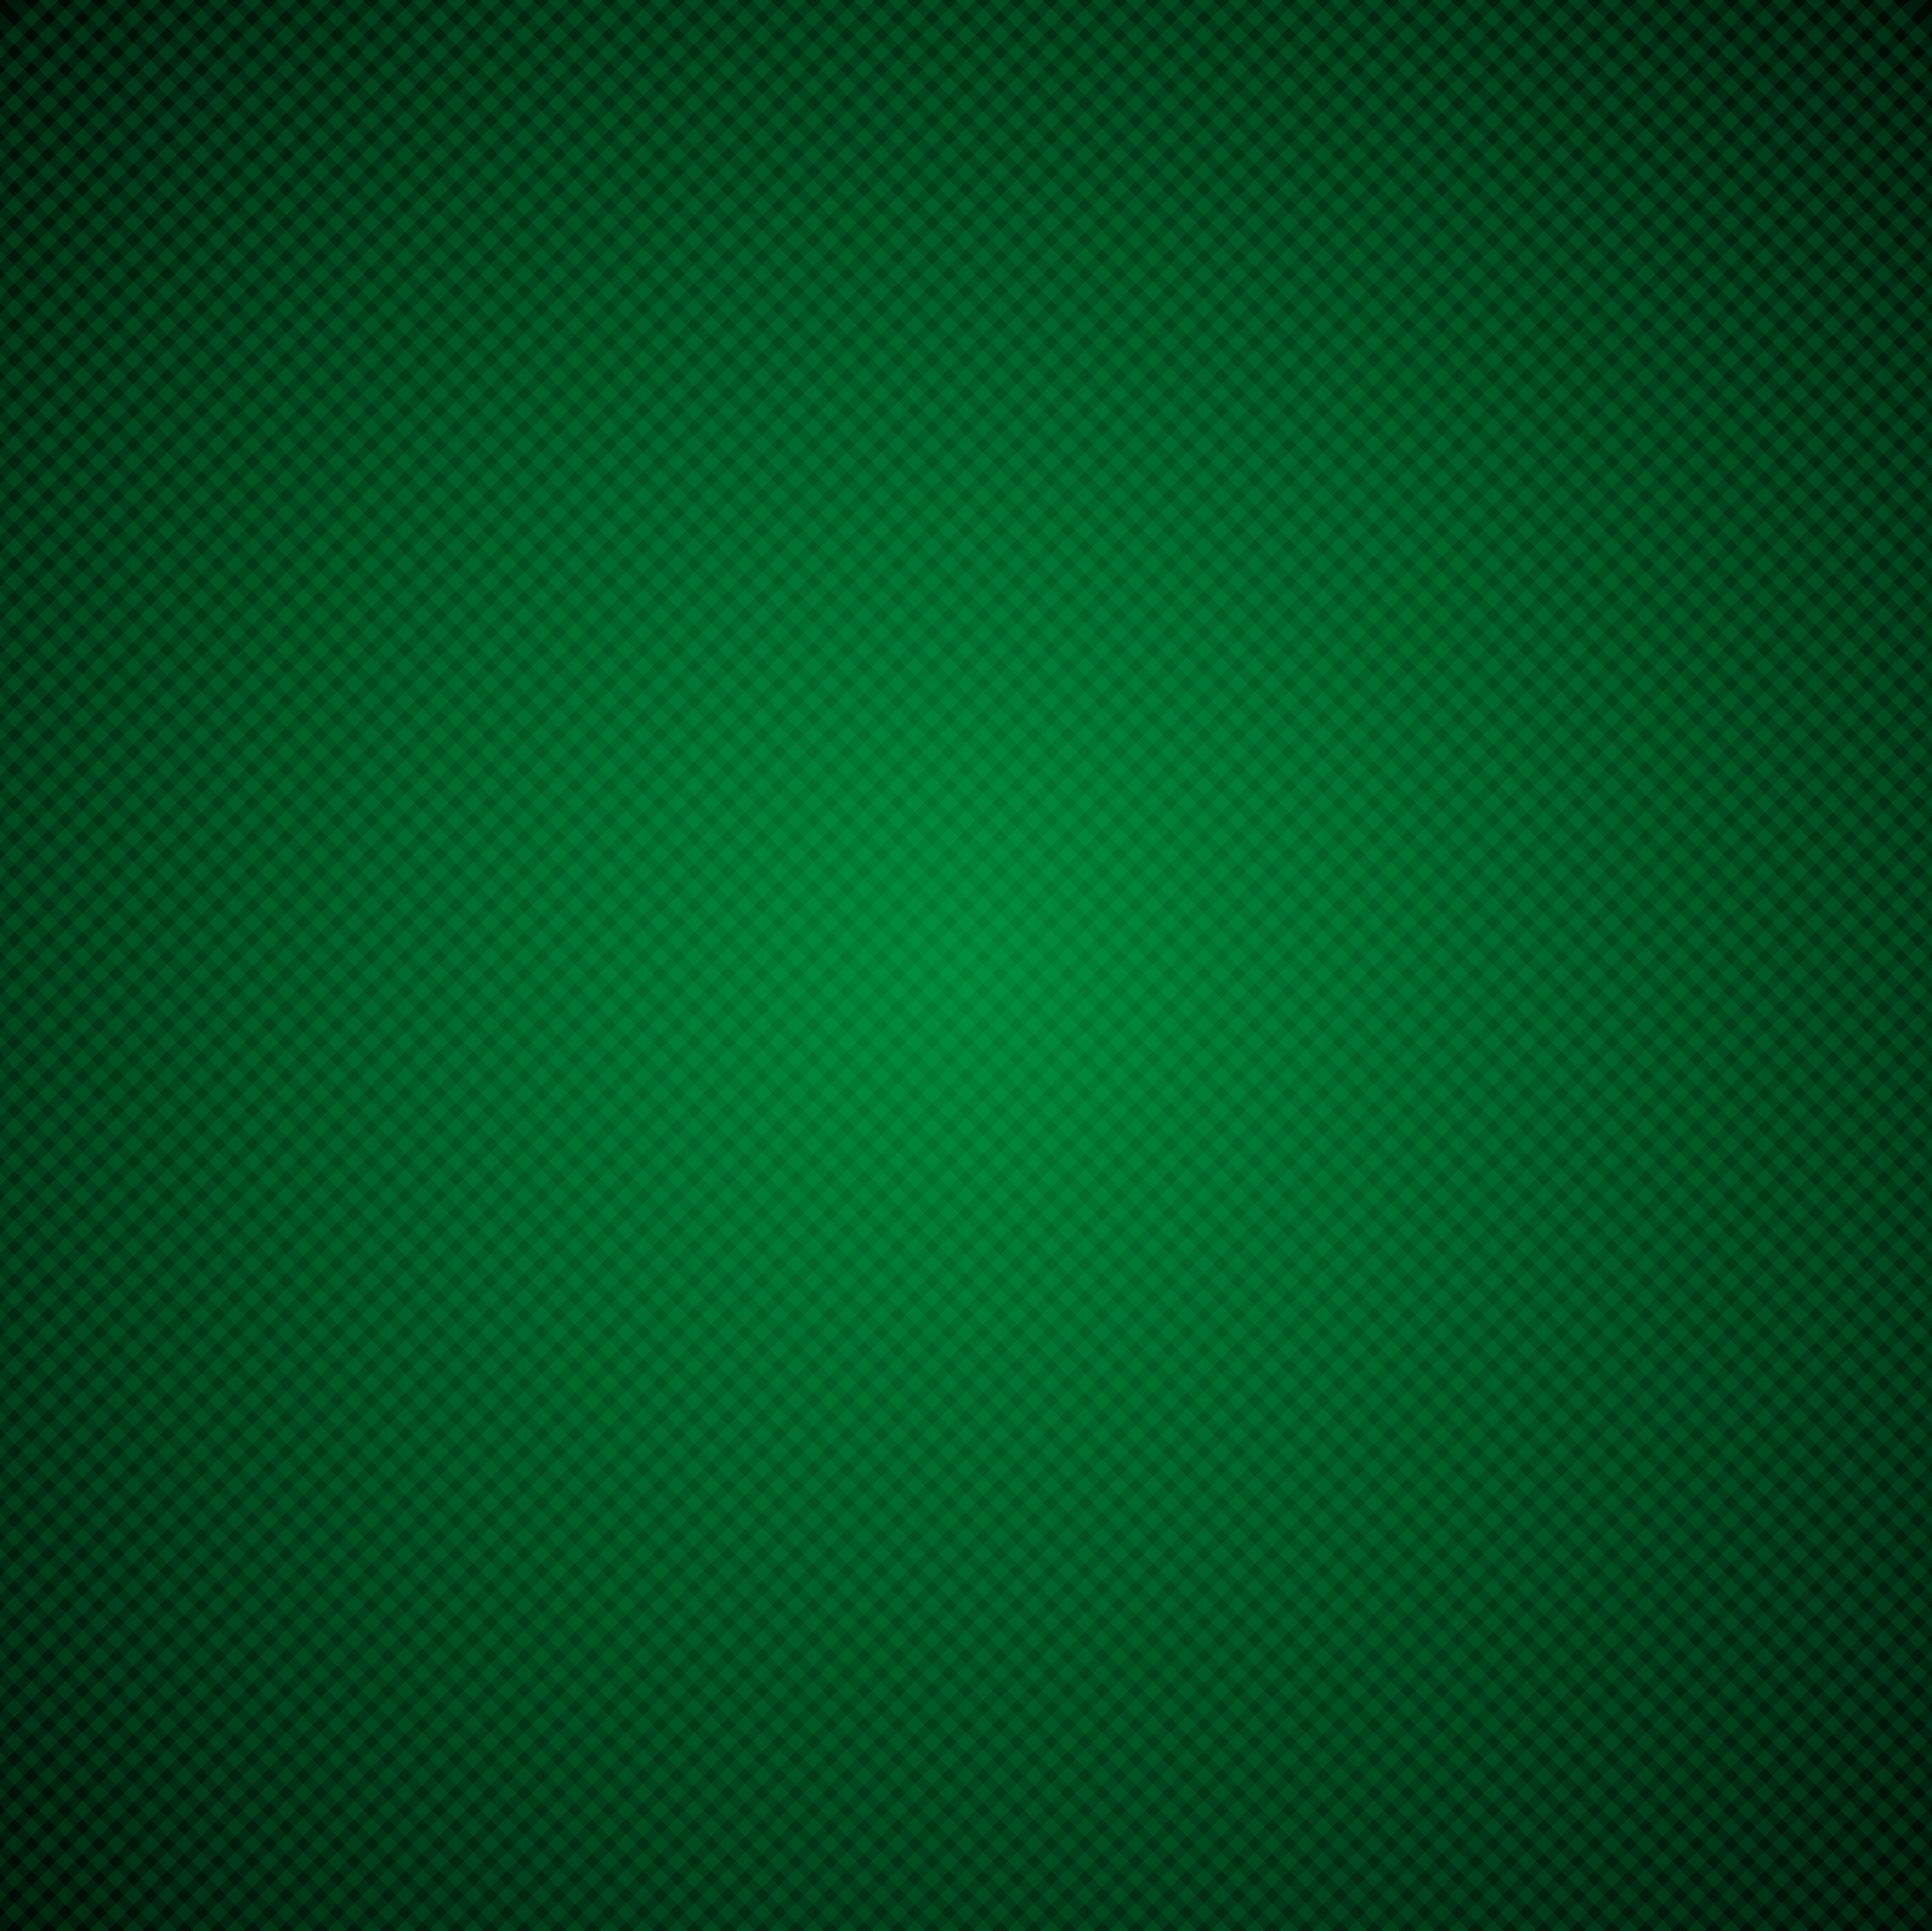 Green Background Gallery Yopriceville   High Quality Images and 6157x6154